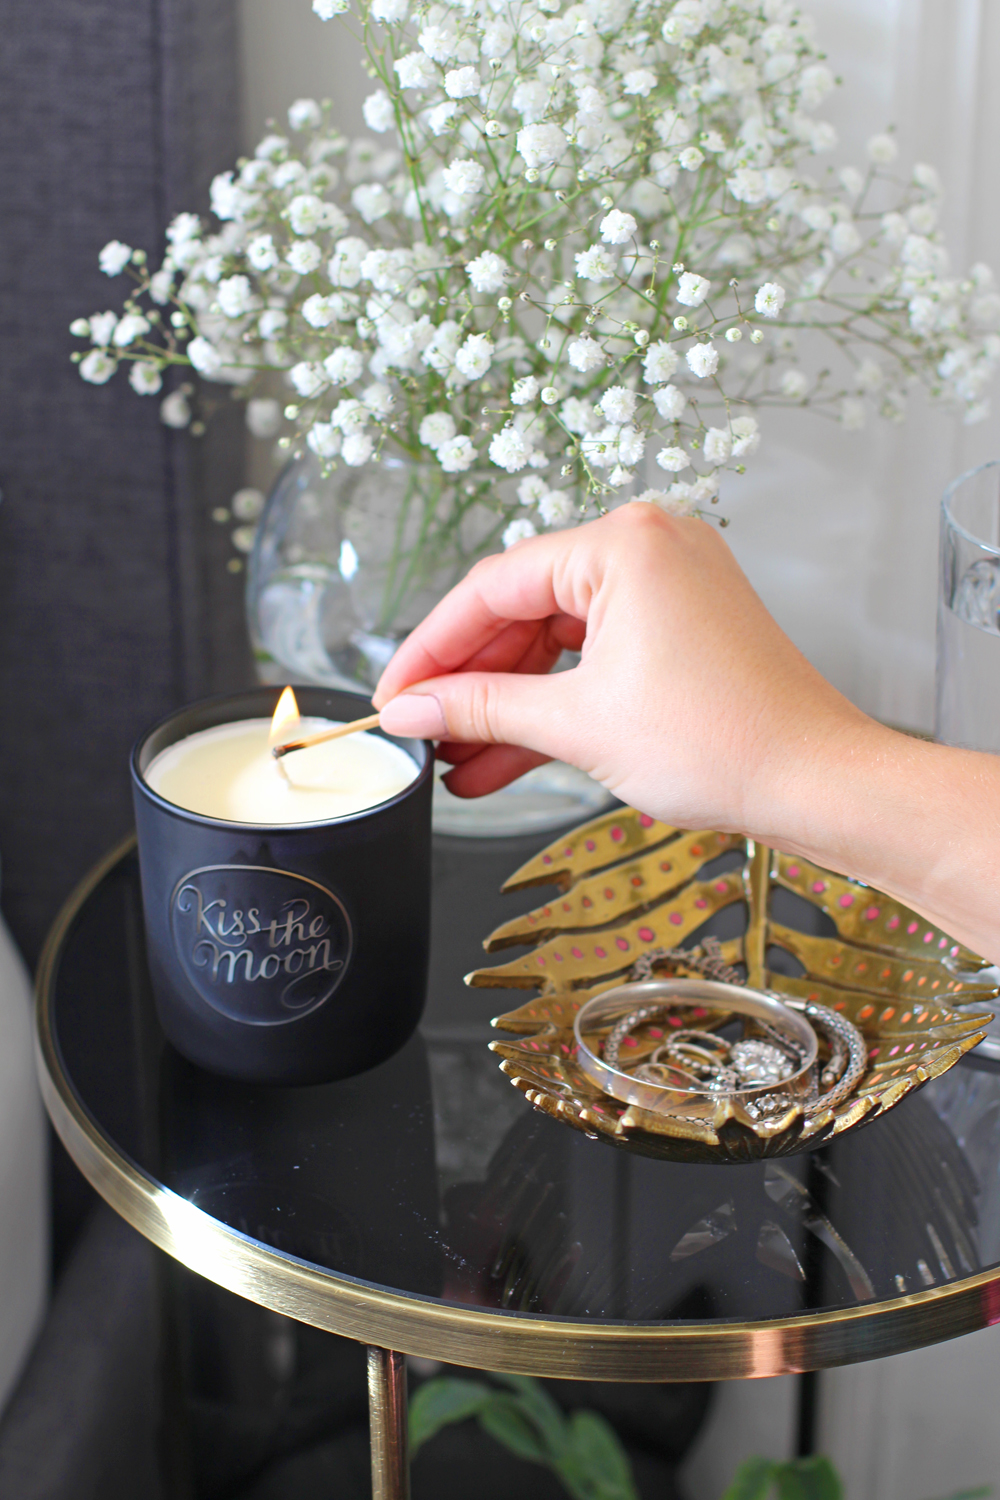 Kiss the Moon glow candle - UK lifestyle & interiors blog